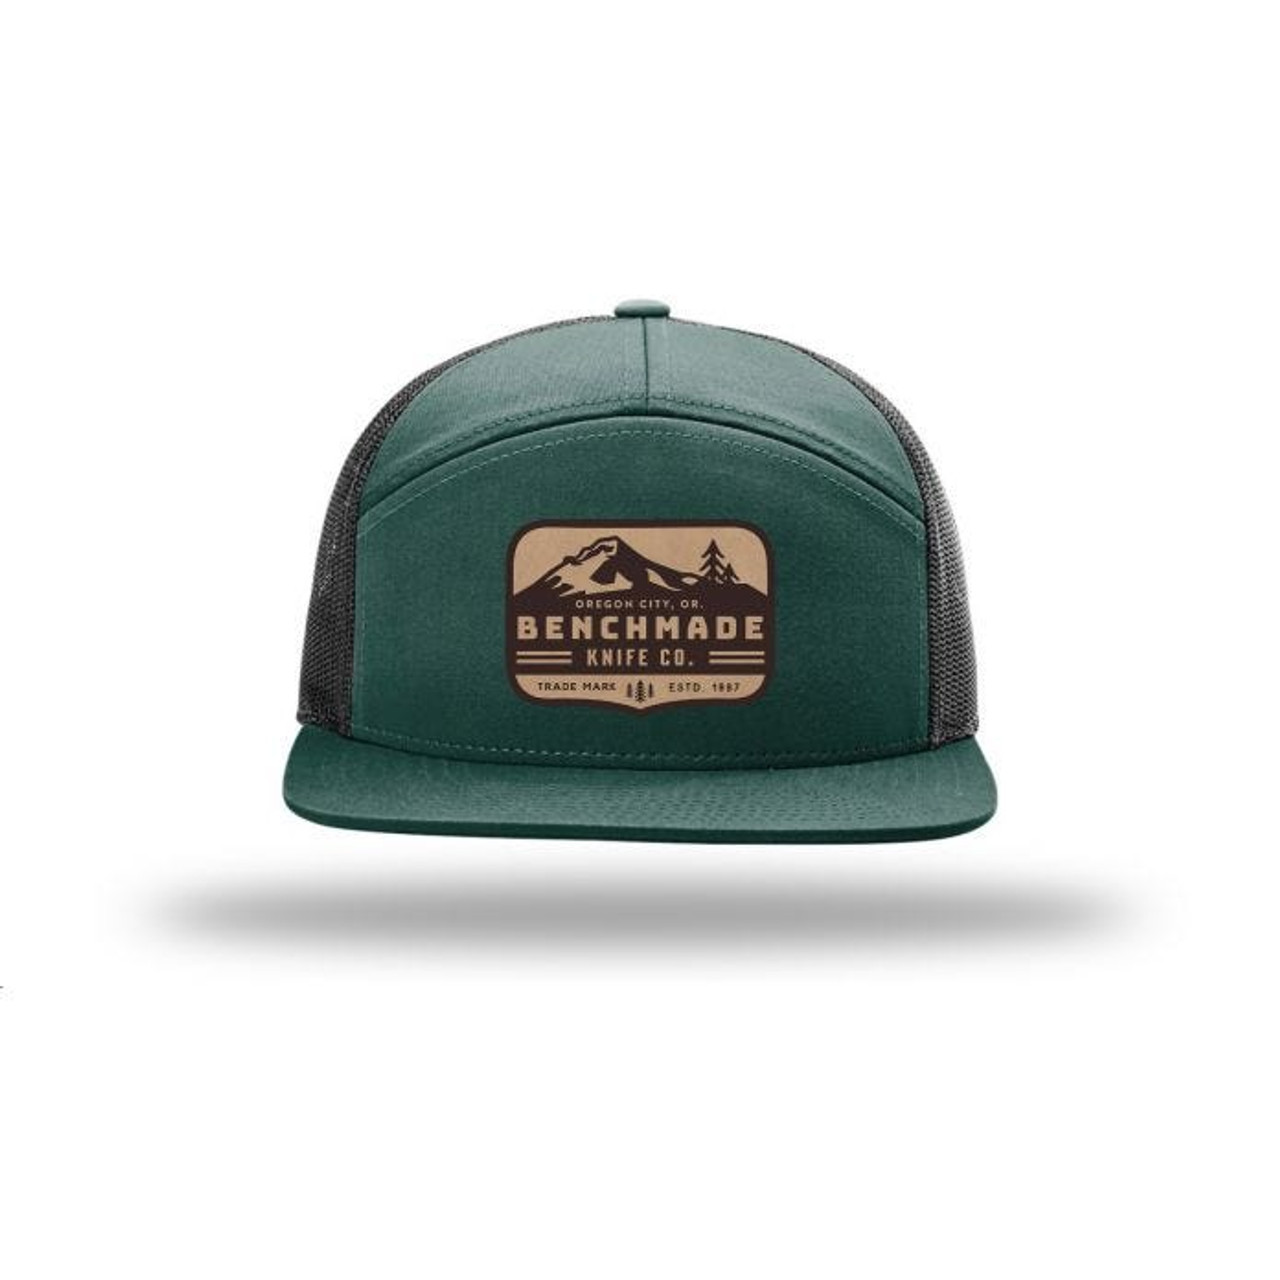 Benchmade Hat 7 Panel Knife Co. Green